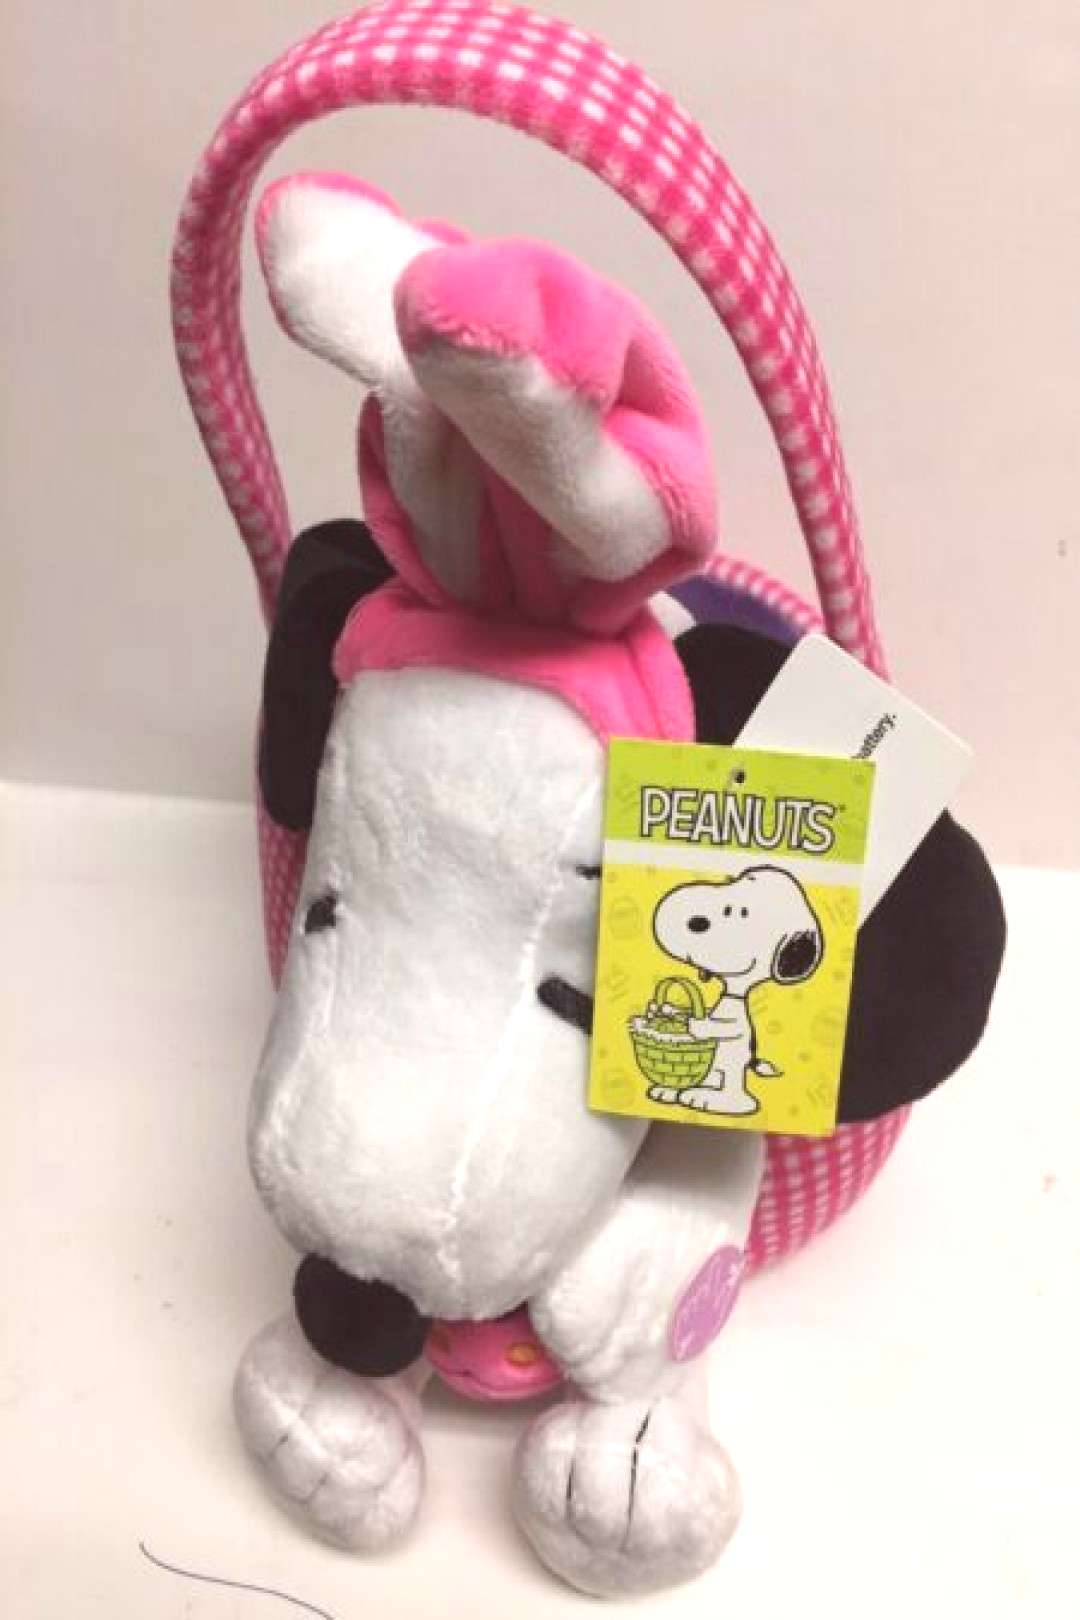 Easter Decorations Peanuts Snoopy Plush Pink Plaid Easter Basket Plays Linus And Lucy Song NEW East